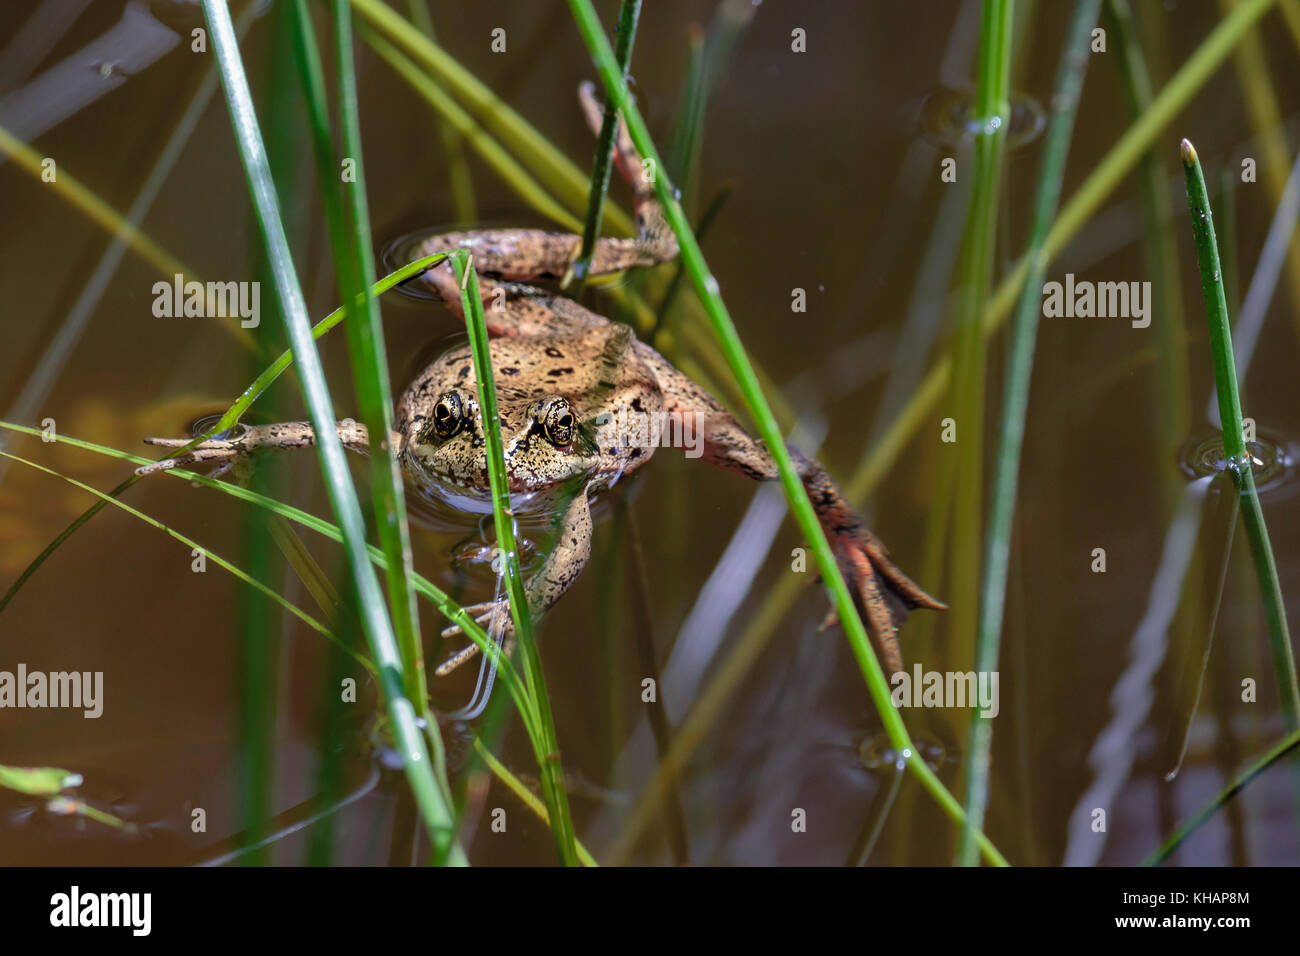 A Northern red-legged frog floats in a pond, staring at the viewer with its long legs and toes sprawled among the - Stock Image